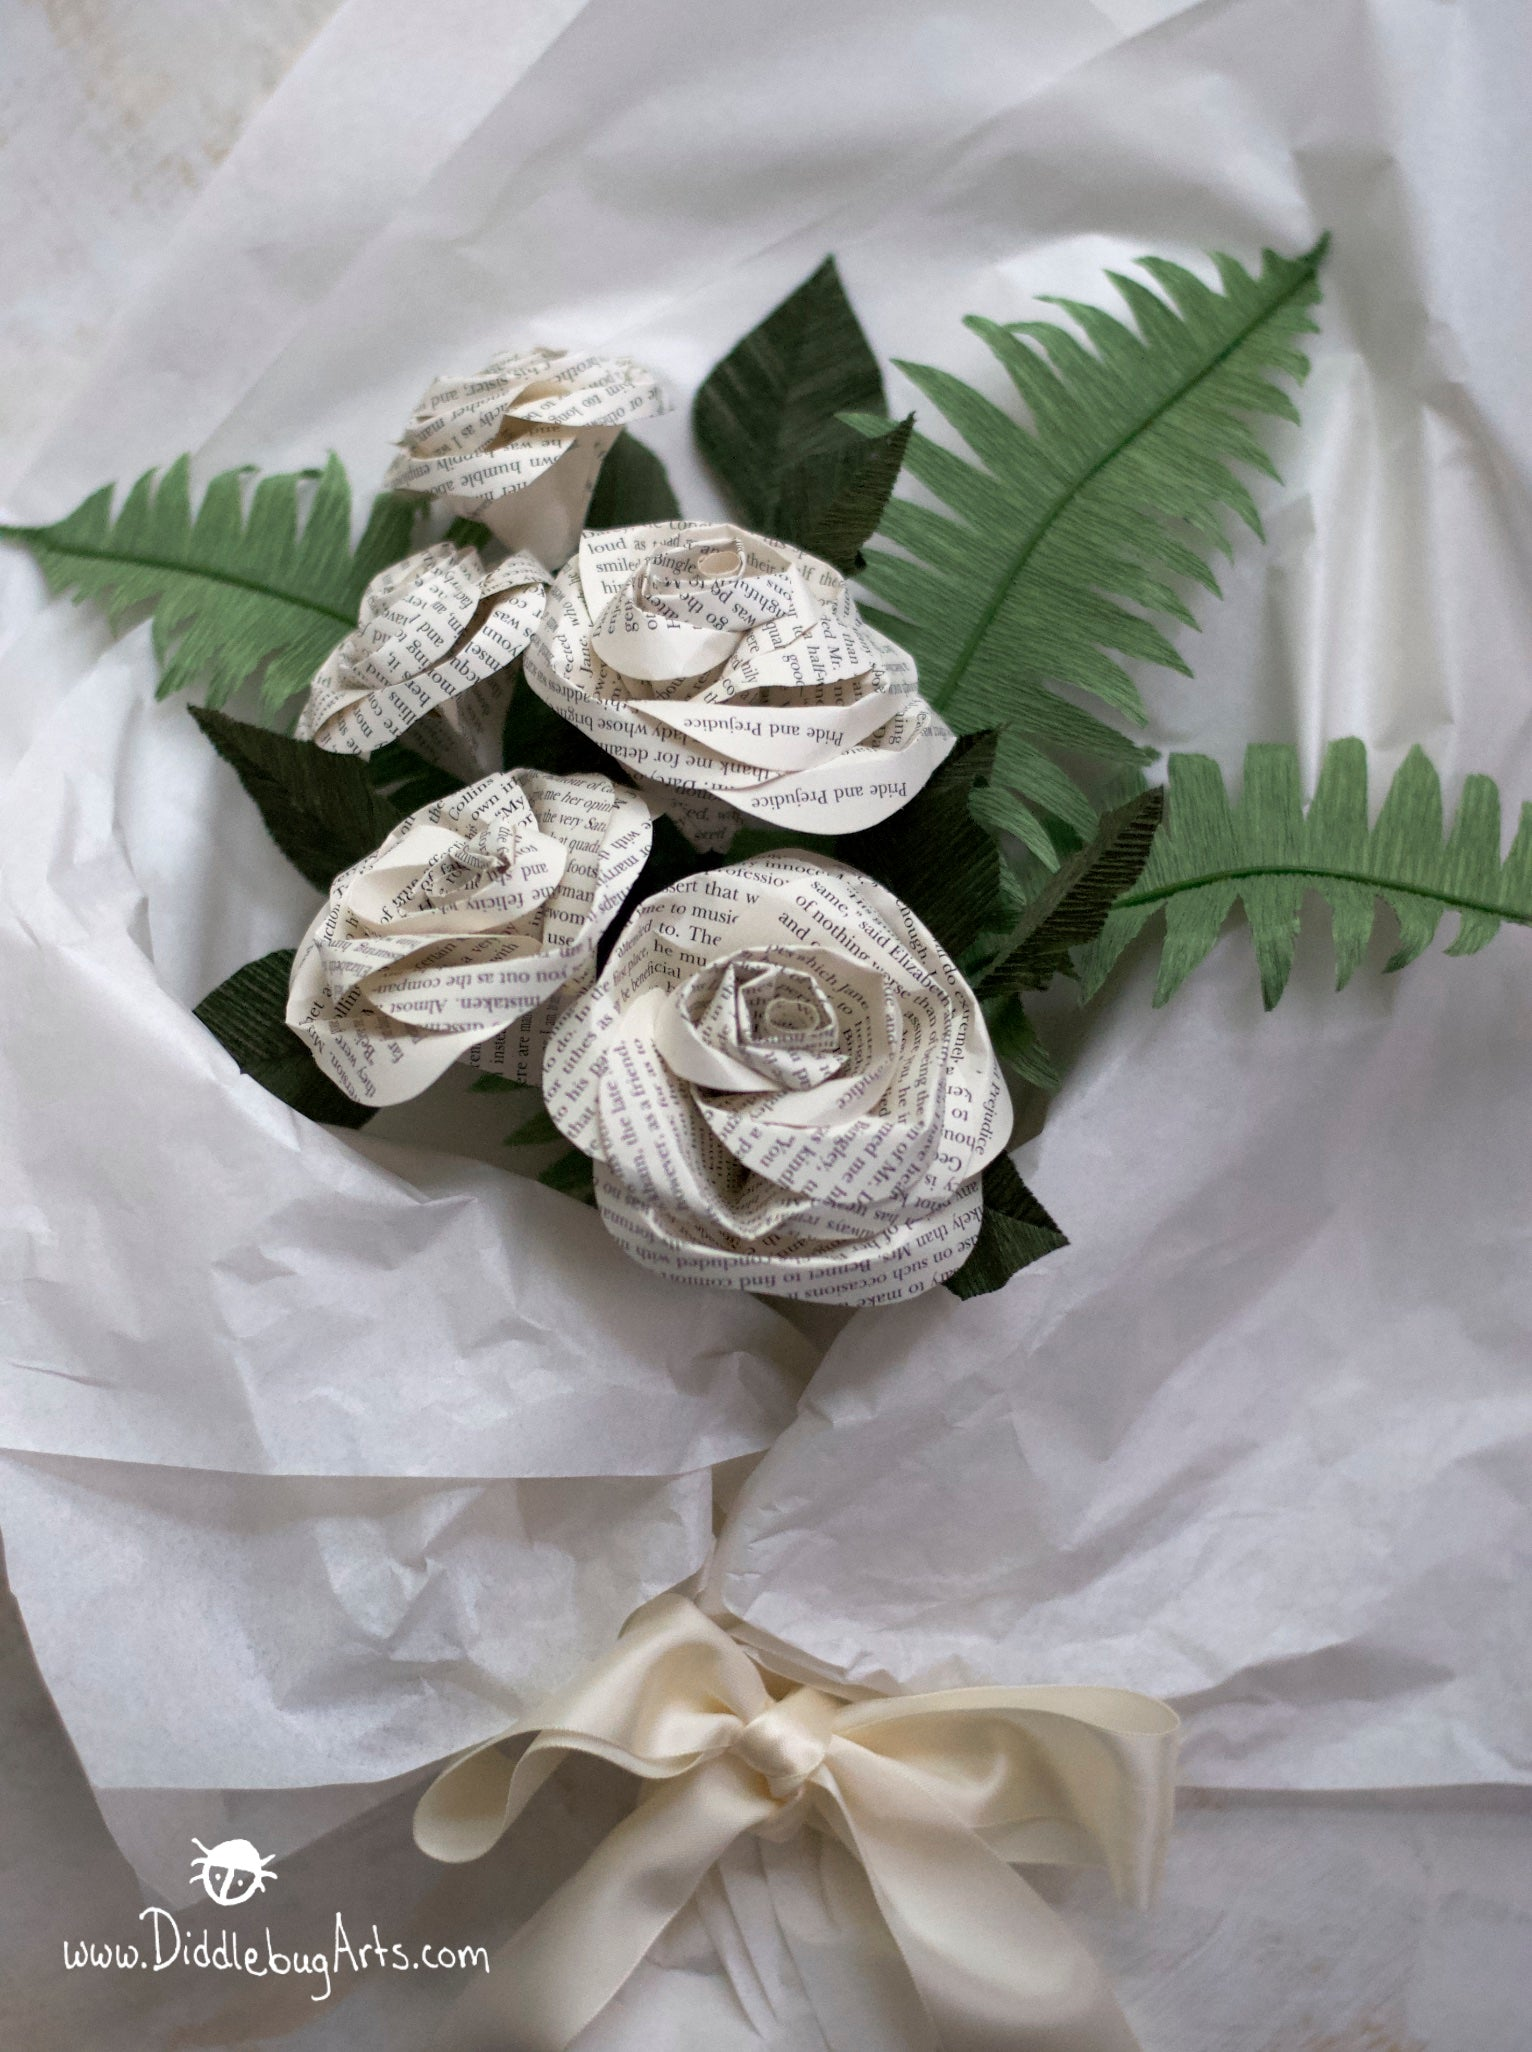 Five Book Page Roses with Crepe Paper Ferns and Rose Leaves Gift Bouquet